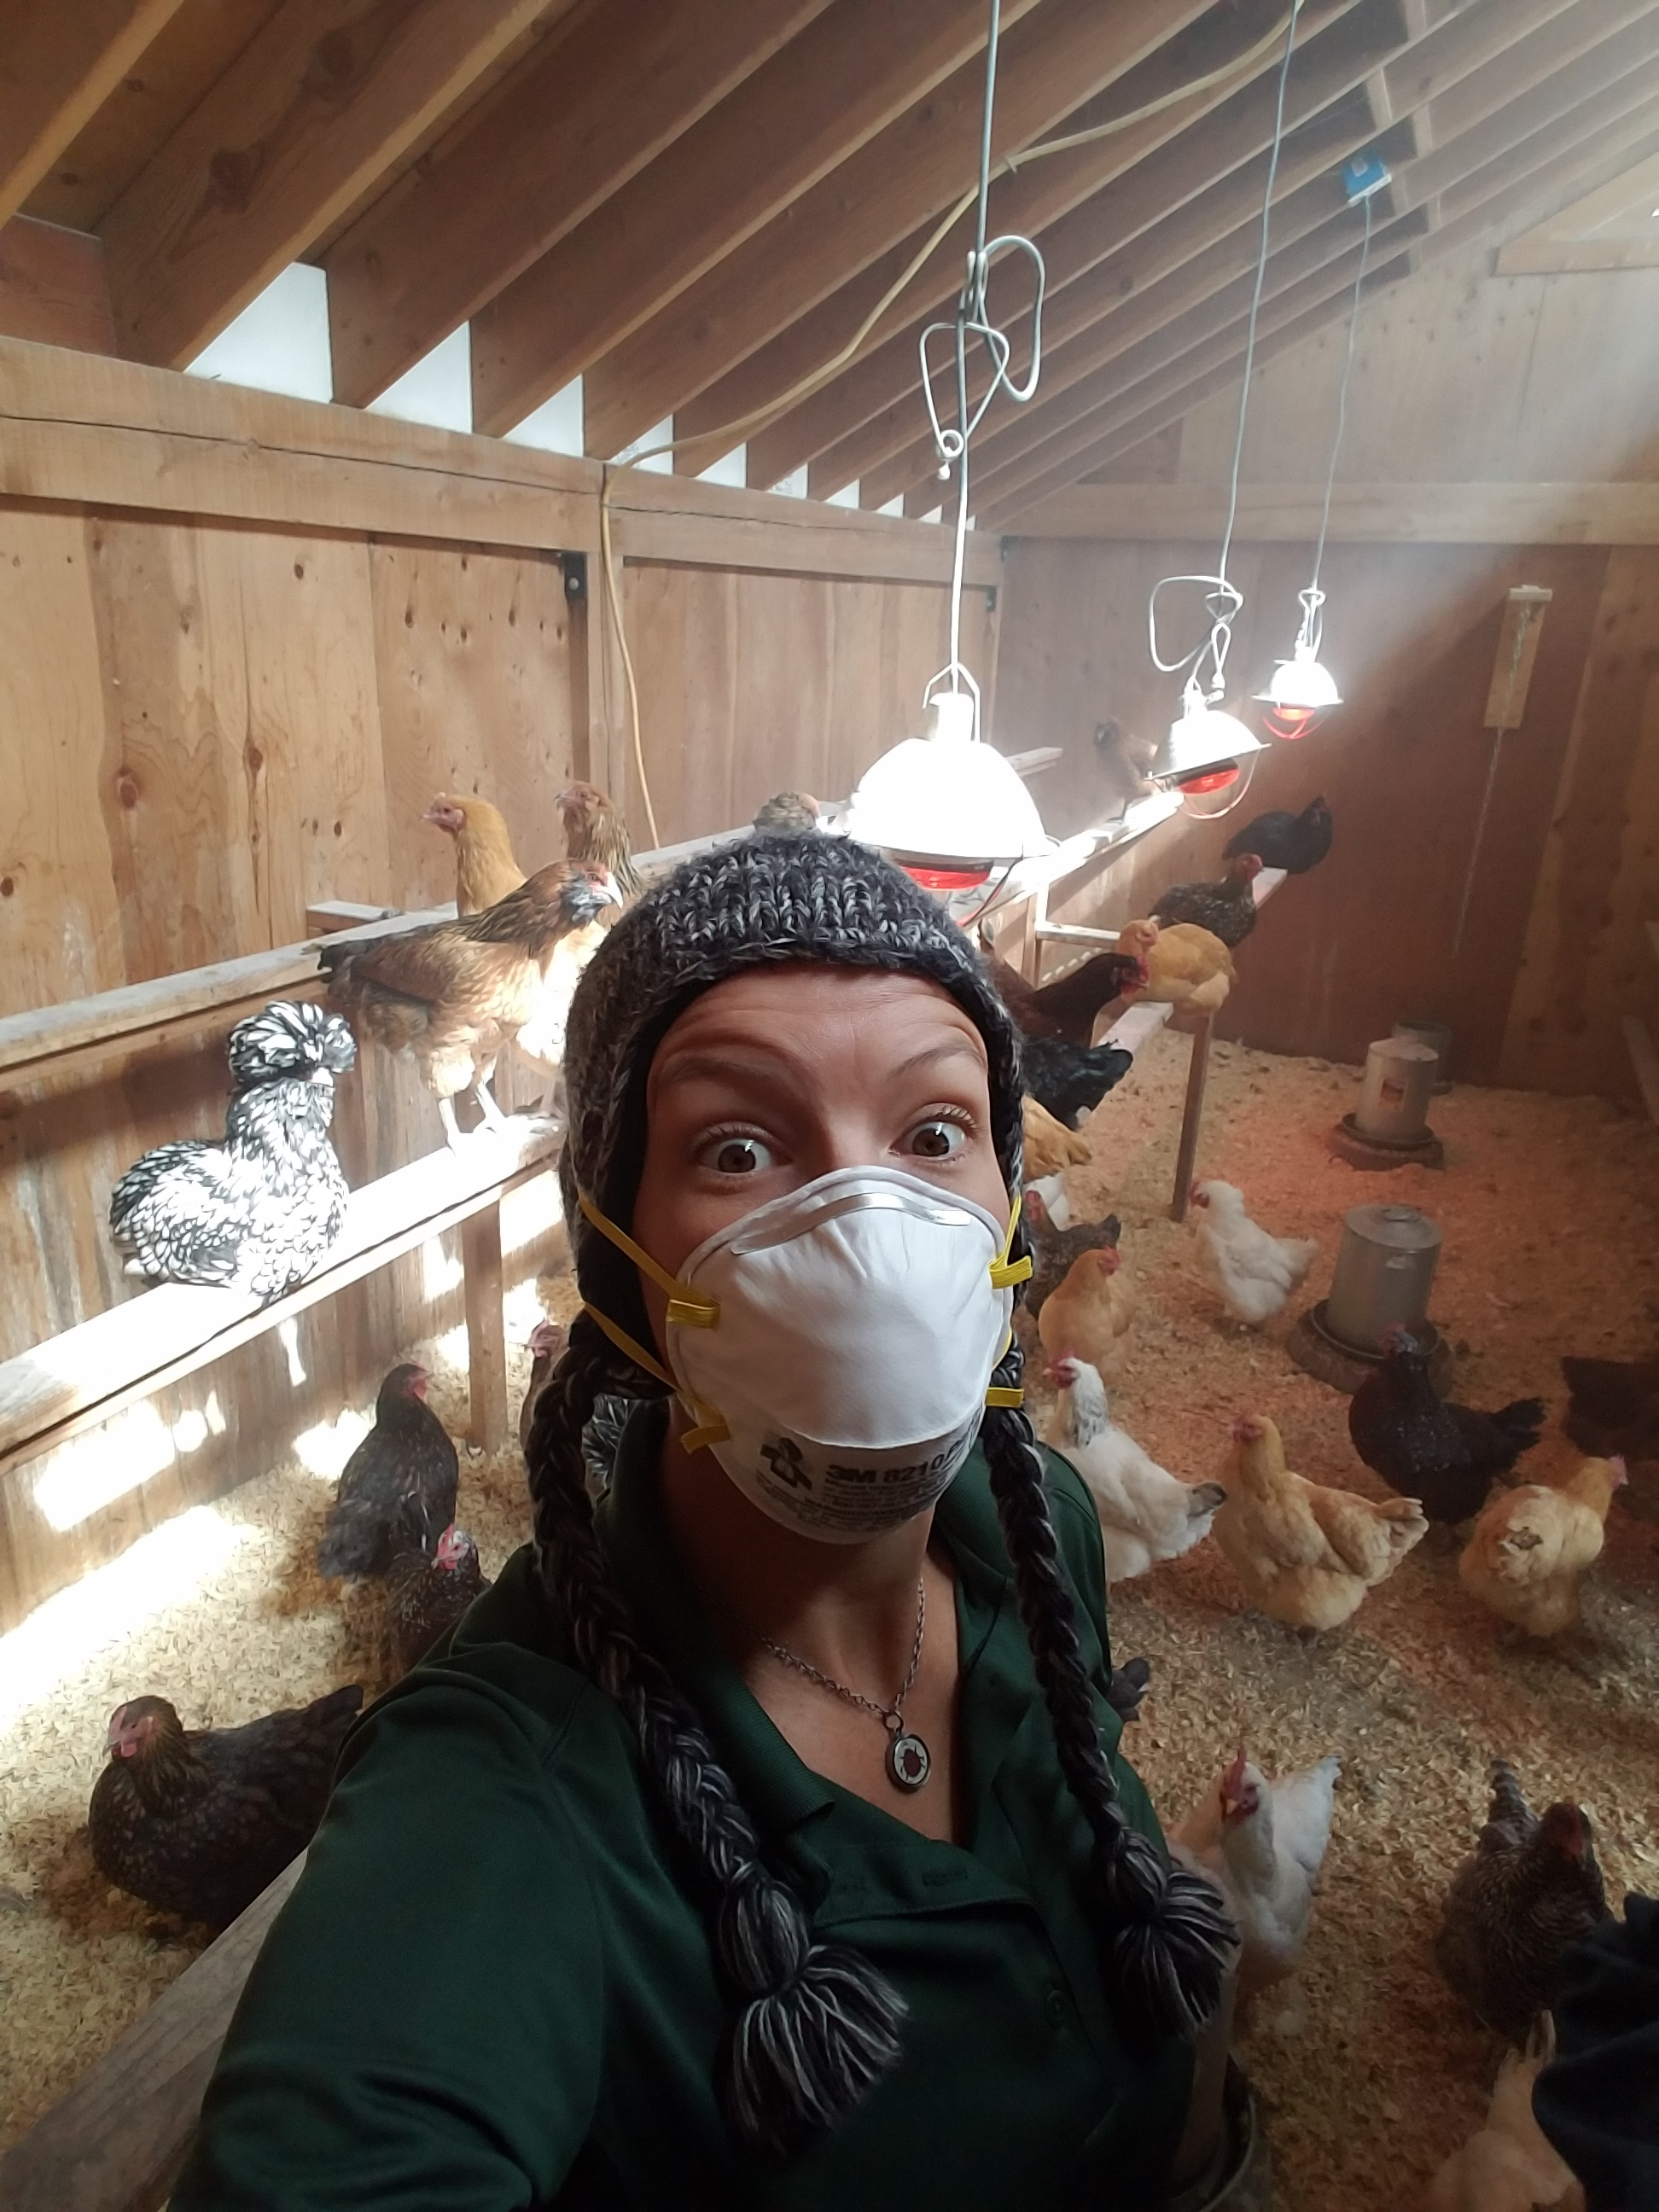 Cleaning a chicken coop, yet not allowed to eat the eggs